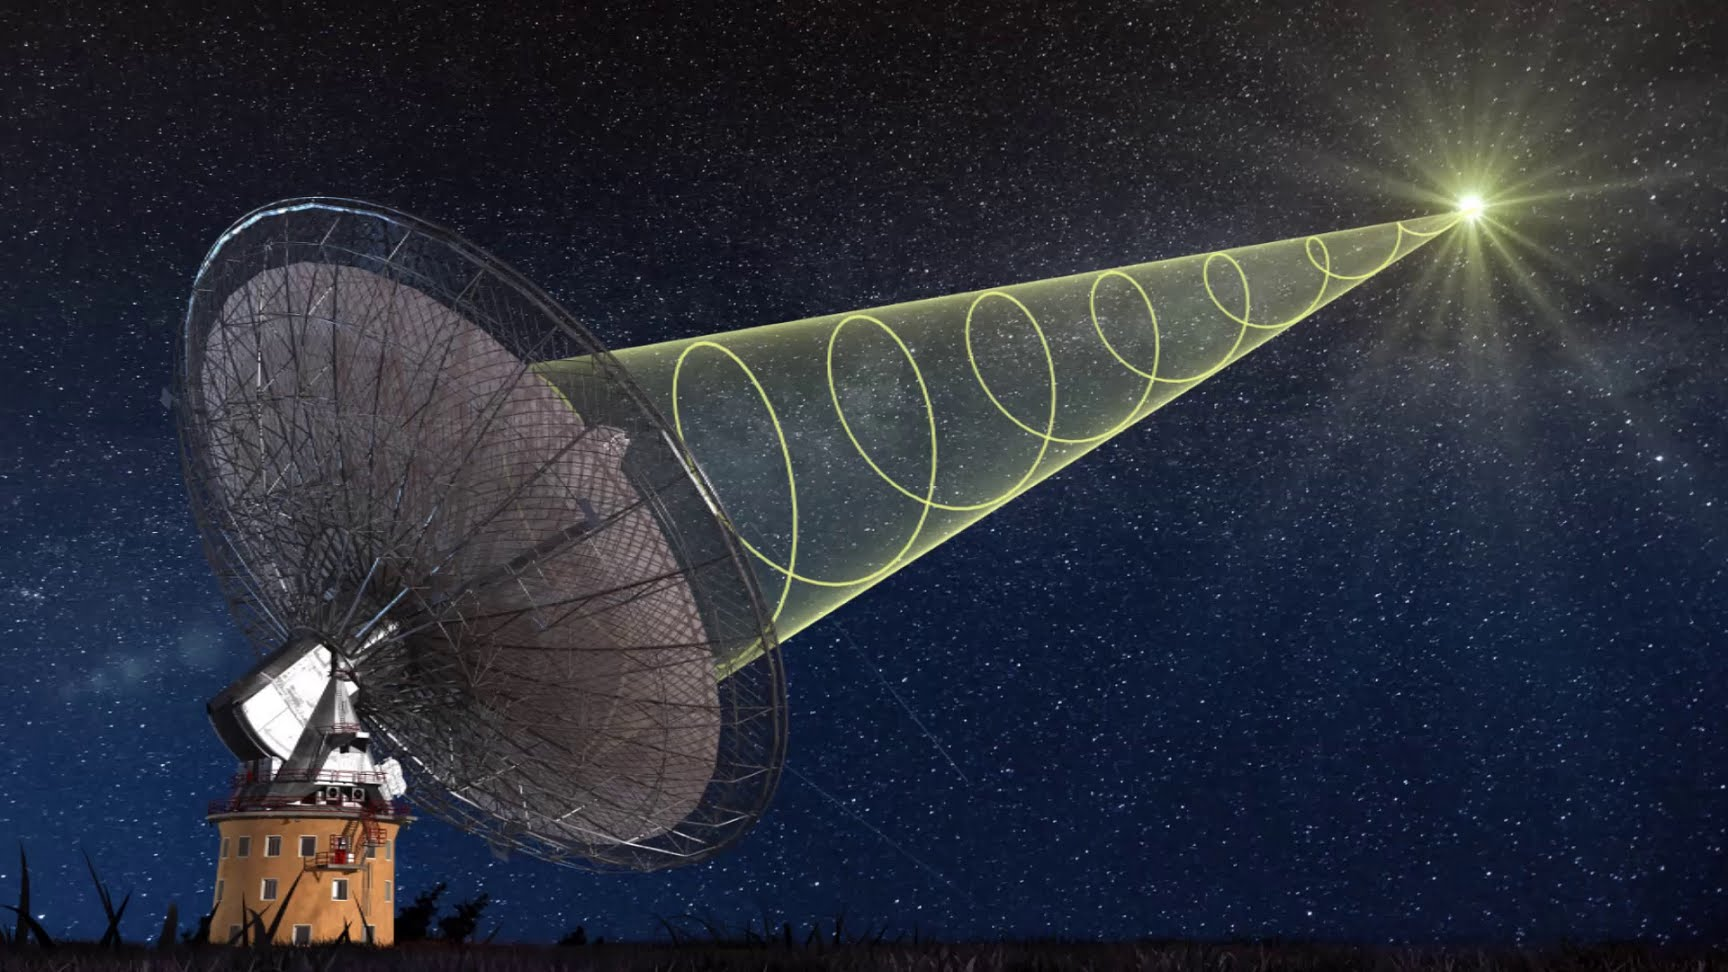 METI scientists to send 'Hello' signal in space hoping to get reply from Aliens